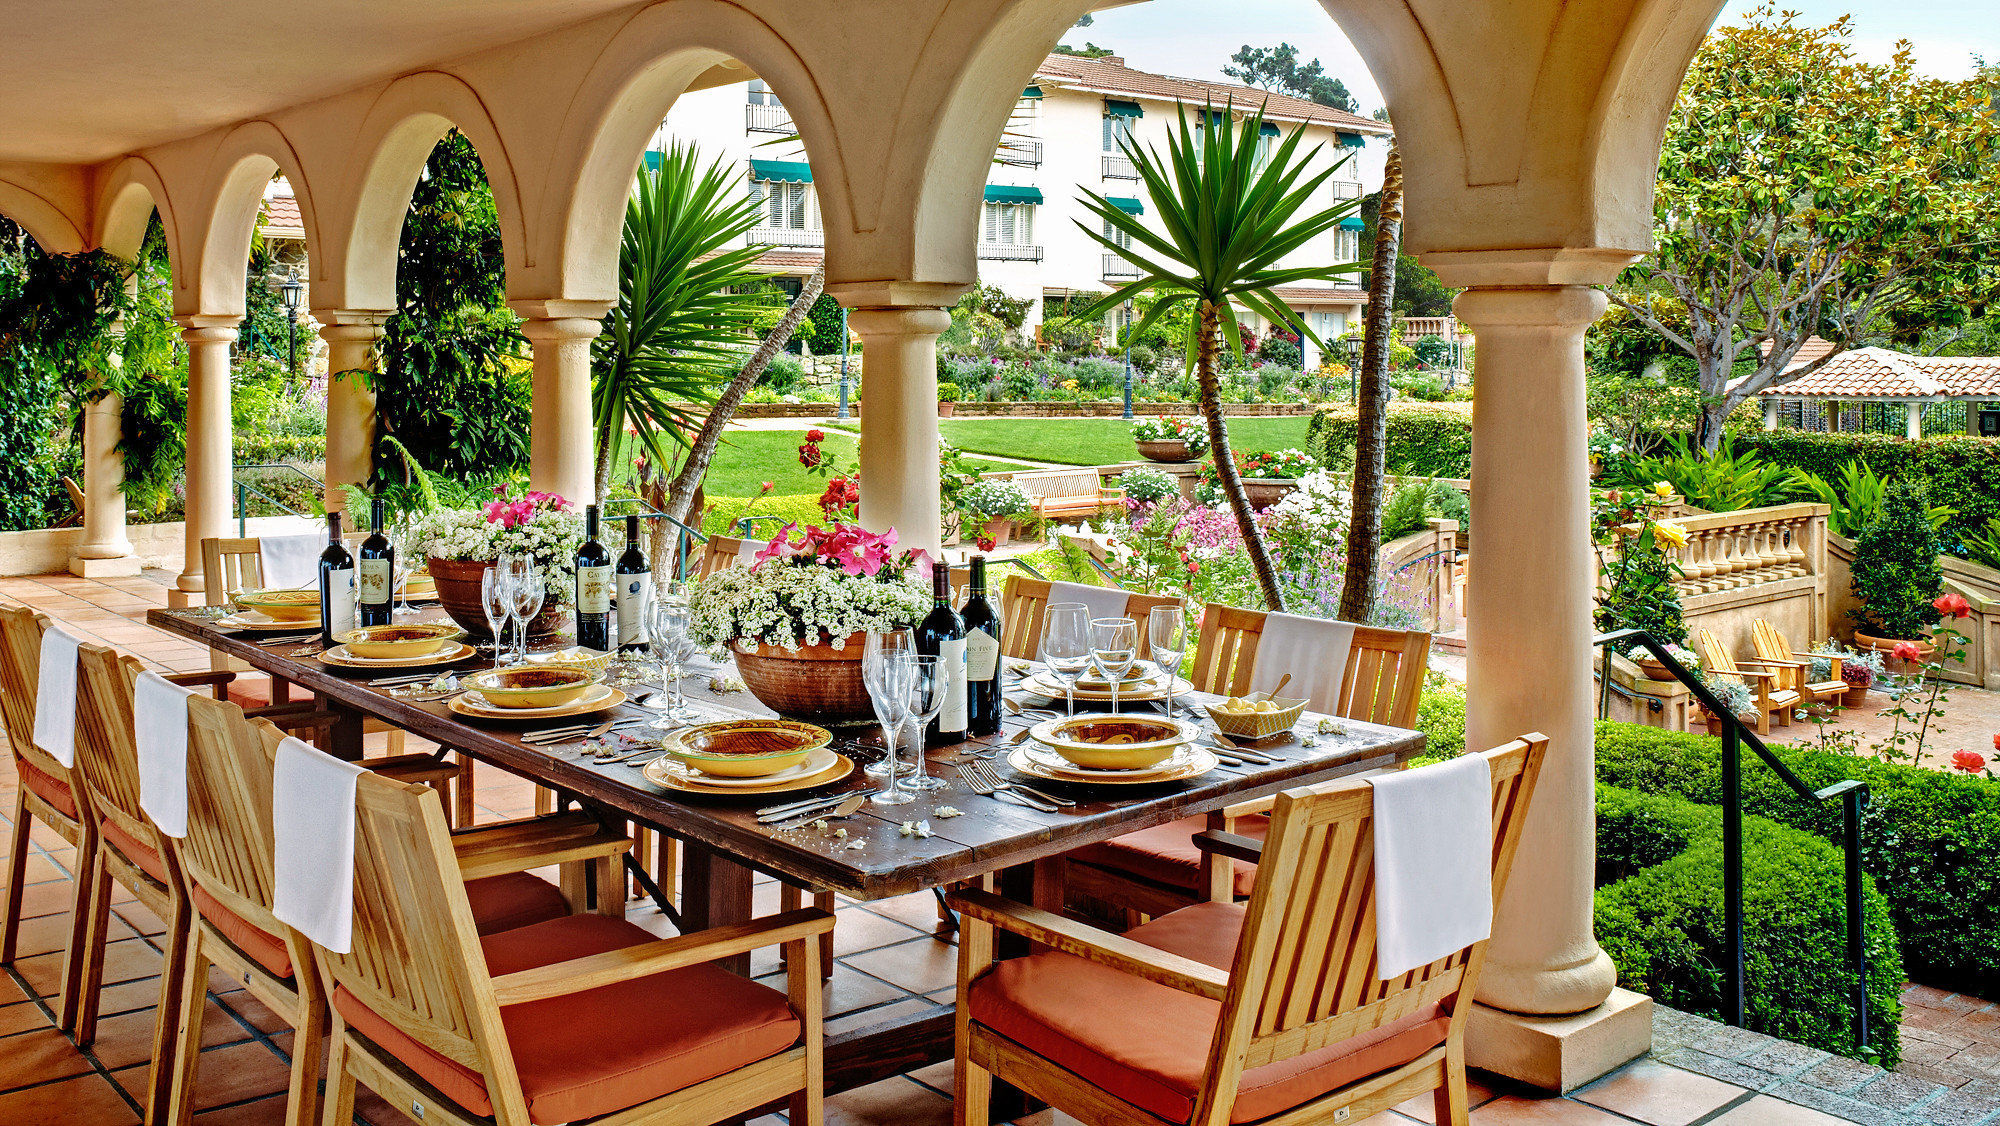 Dining Drink Eat Garden Outdoors Resort restaurant home Villa hacienda set